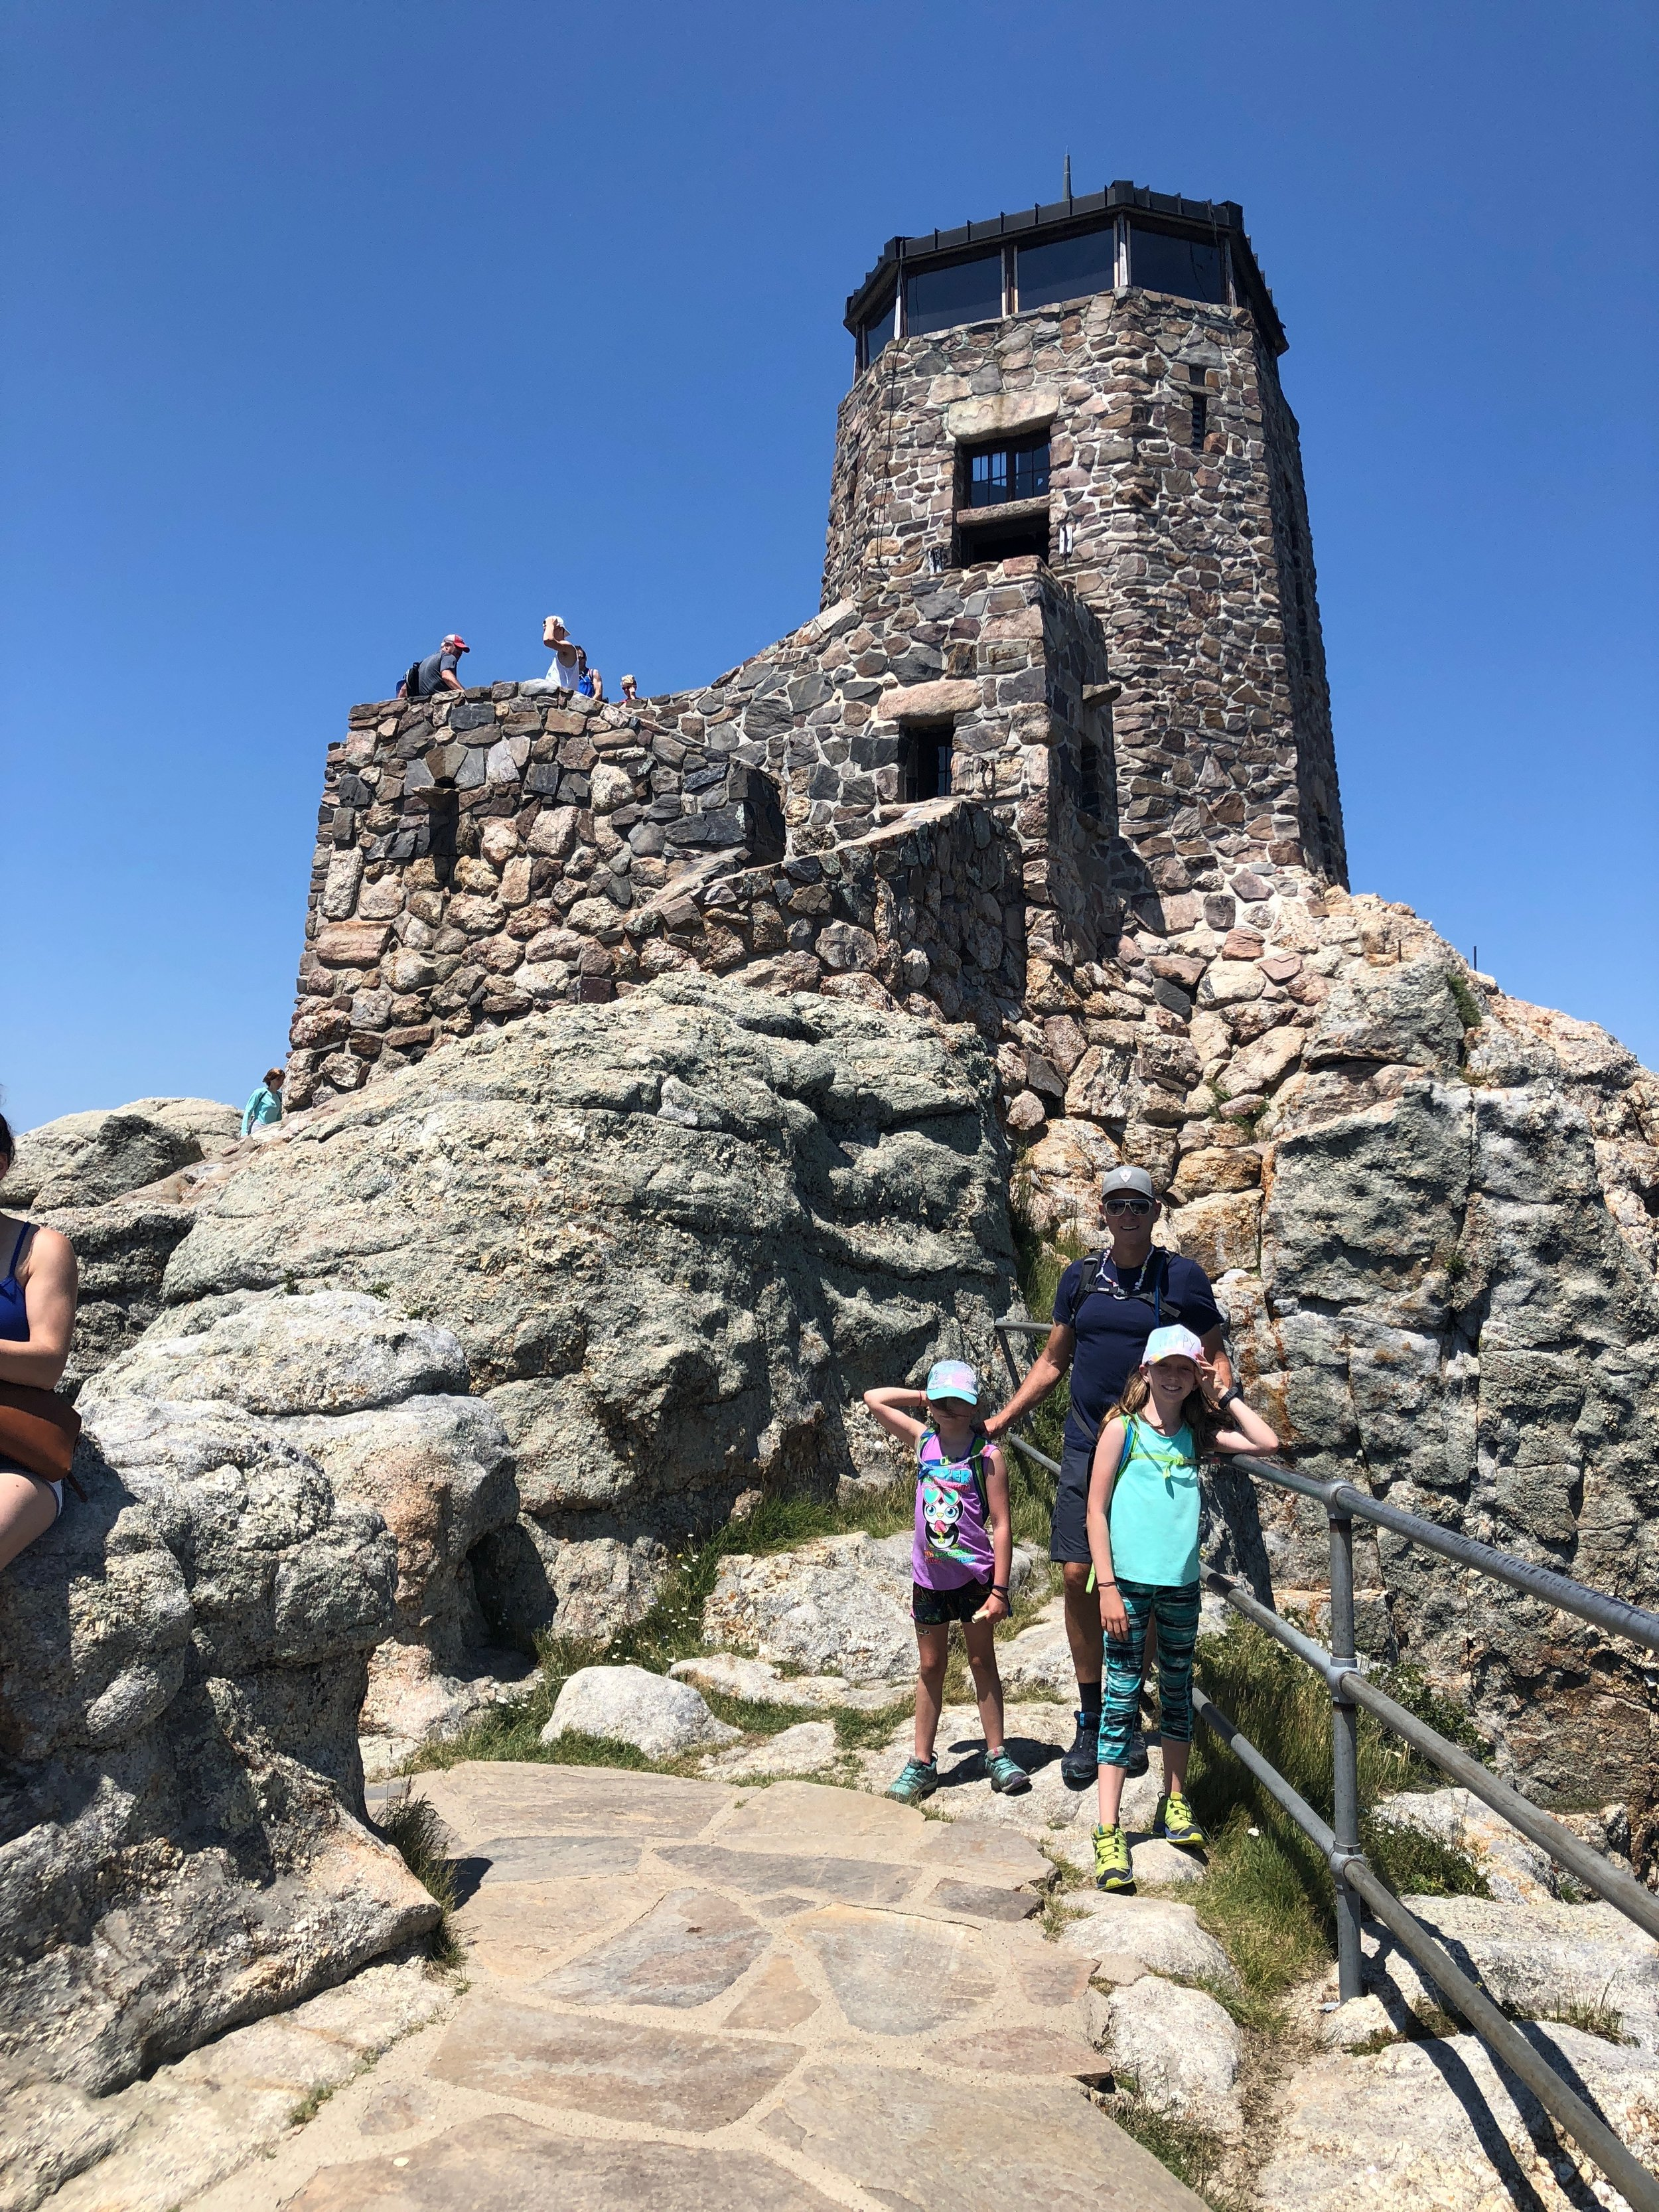 At the Top of Black Elk Peak, 7,244ft. This is an old fire tower that was pretty cool to check out. When we went up to the top level we all bent down so Isla was the tallest person in all of South Dakota for a few seconds!!!